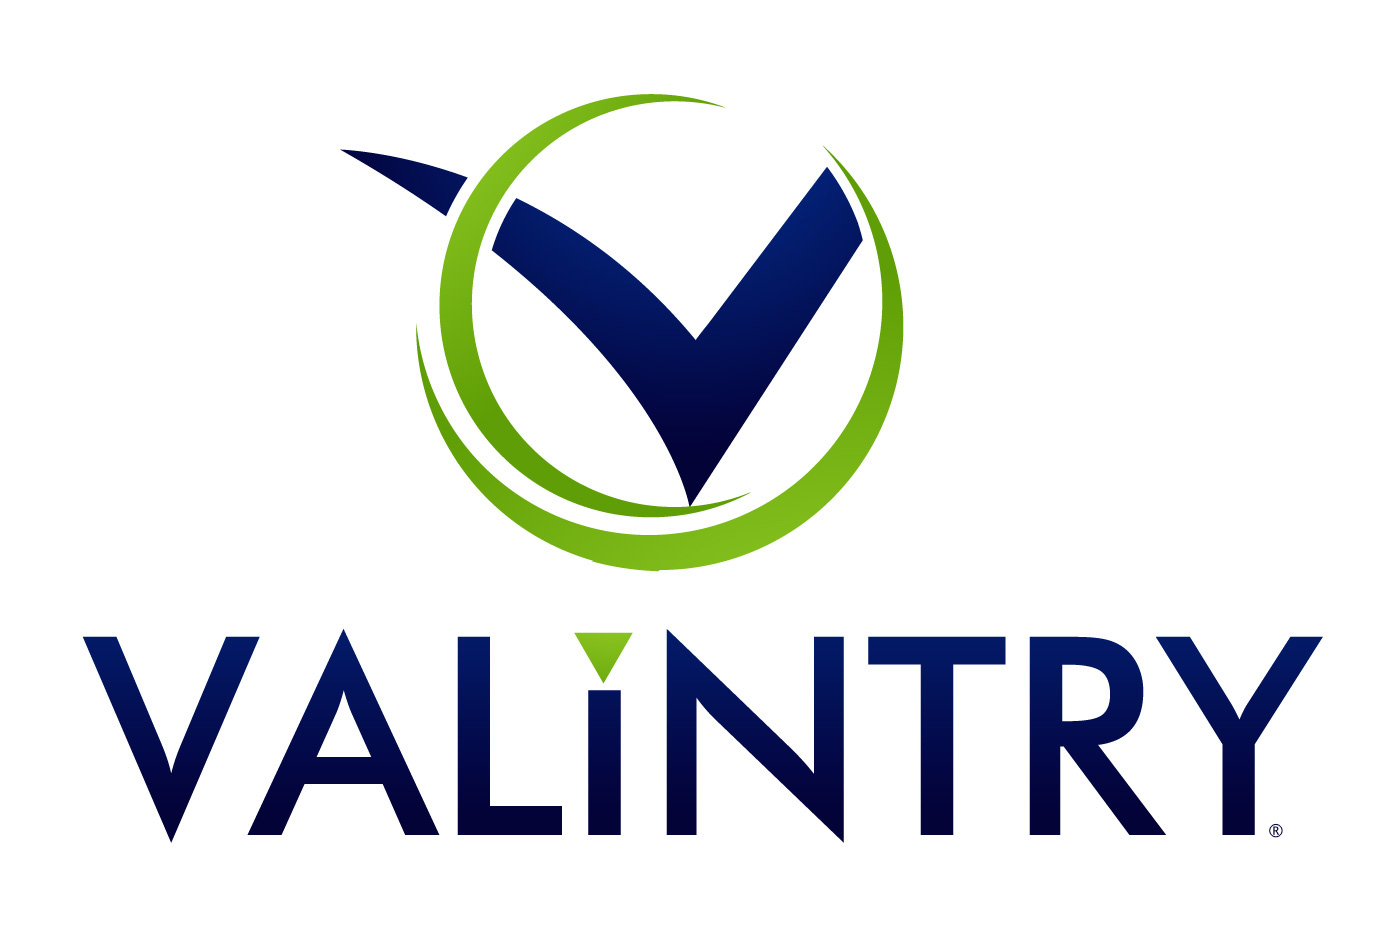 Tax Senior in Detroit, Michigan - VALiNTRY Job